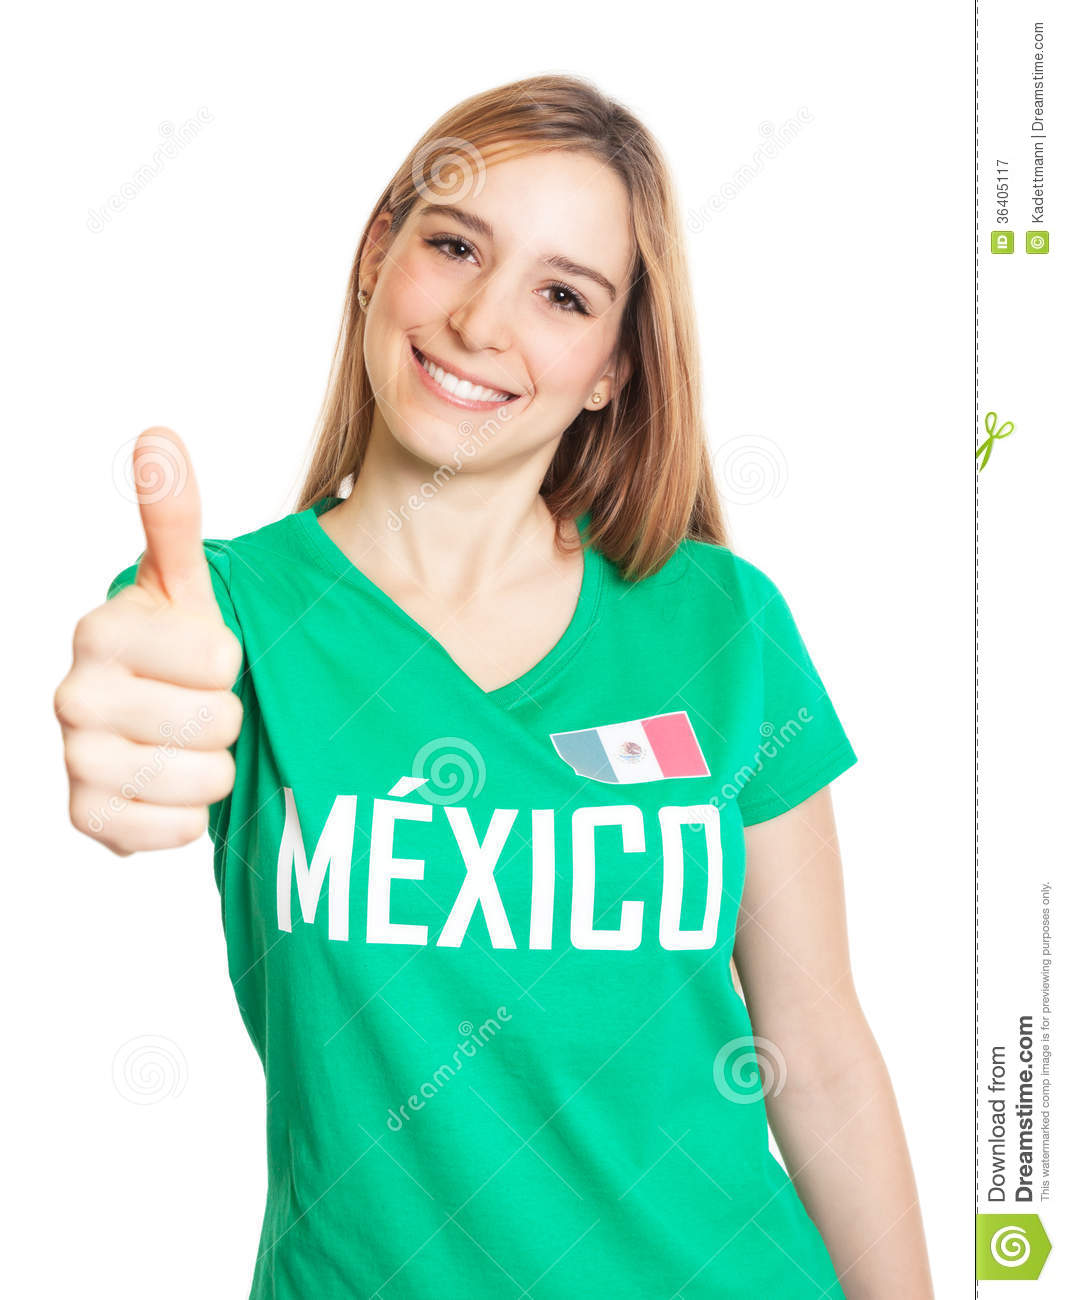 Mexican dating a white girl